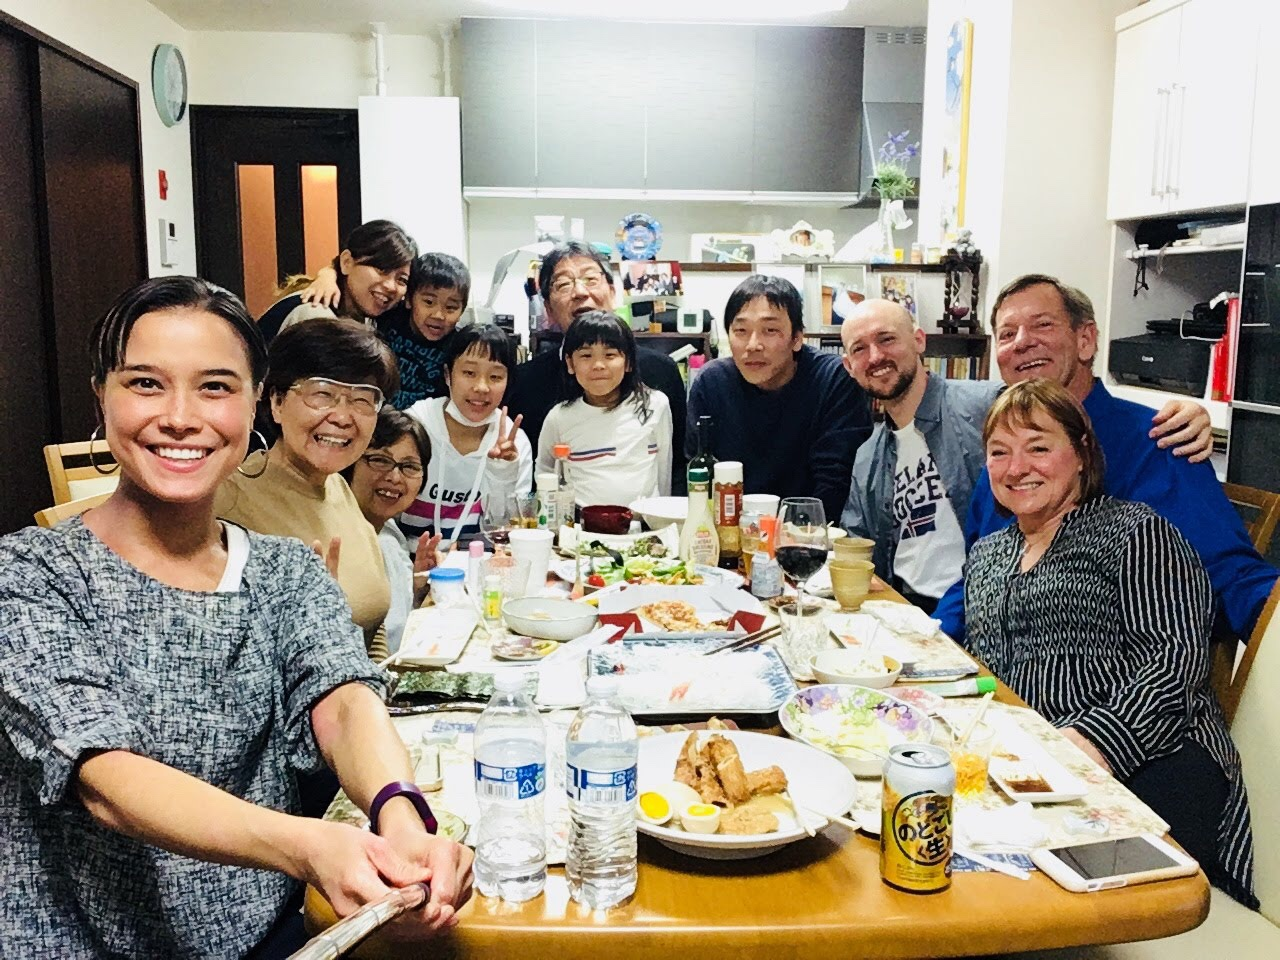 Enjoying a Gluten-Free Diet in Japan with my Japanese Family and San Francisco Friends and Family